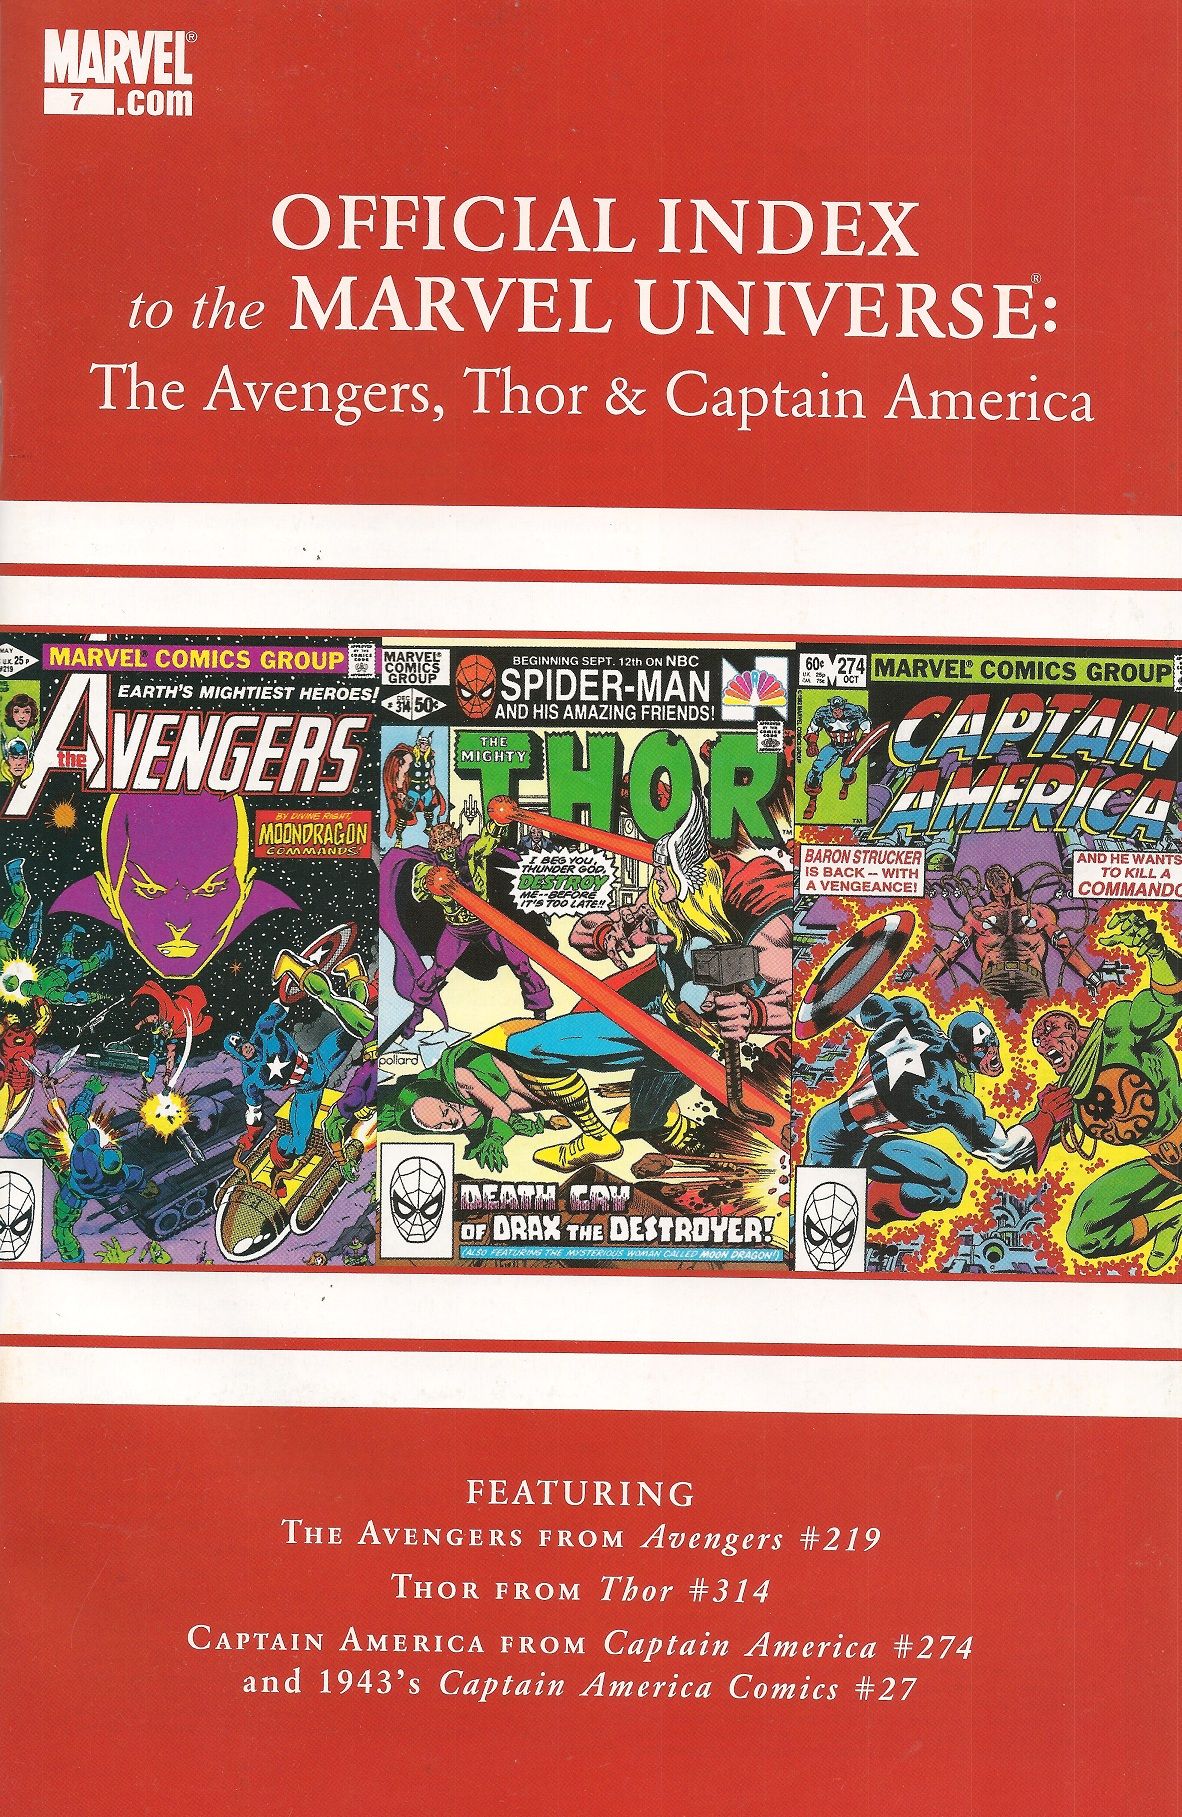 Avengers, Thor & Captain America: Official Index to the Marvel Universe Vol 1 7